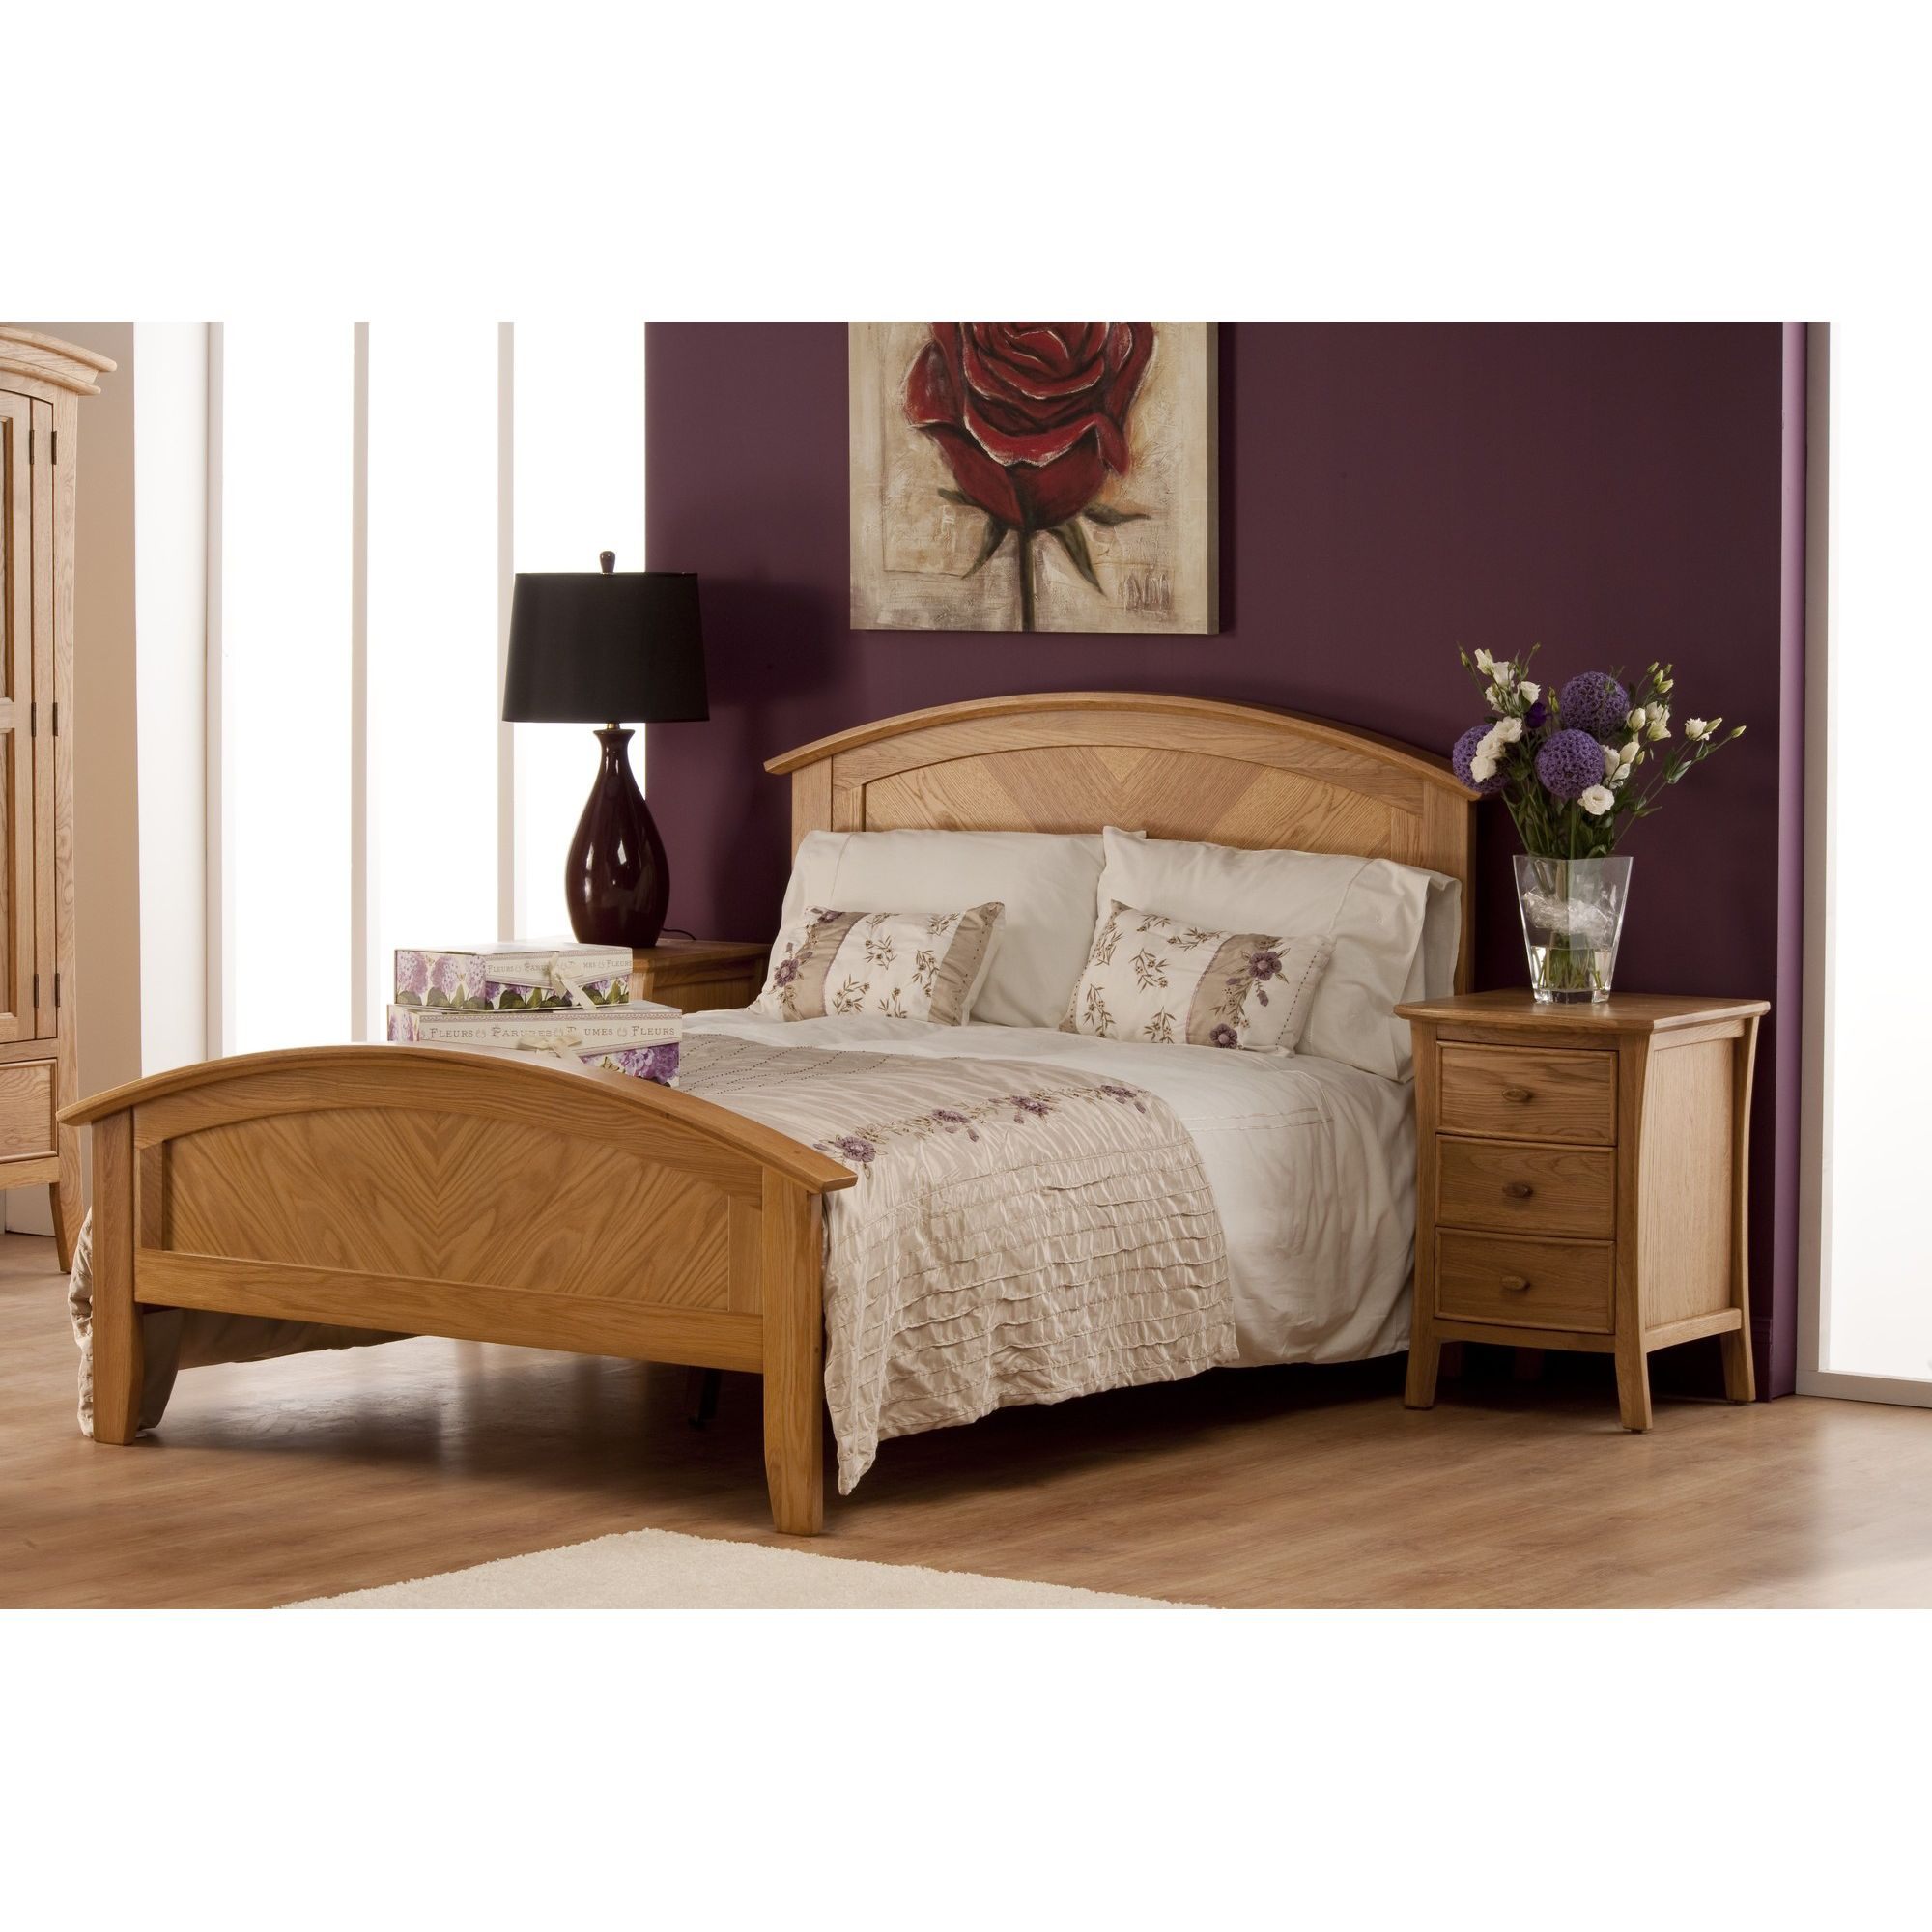 World Furniture Calgary Bed Frame - Double at Tesco Direct